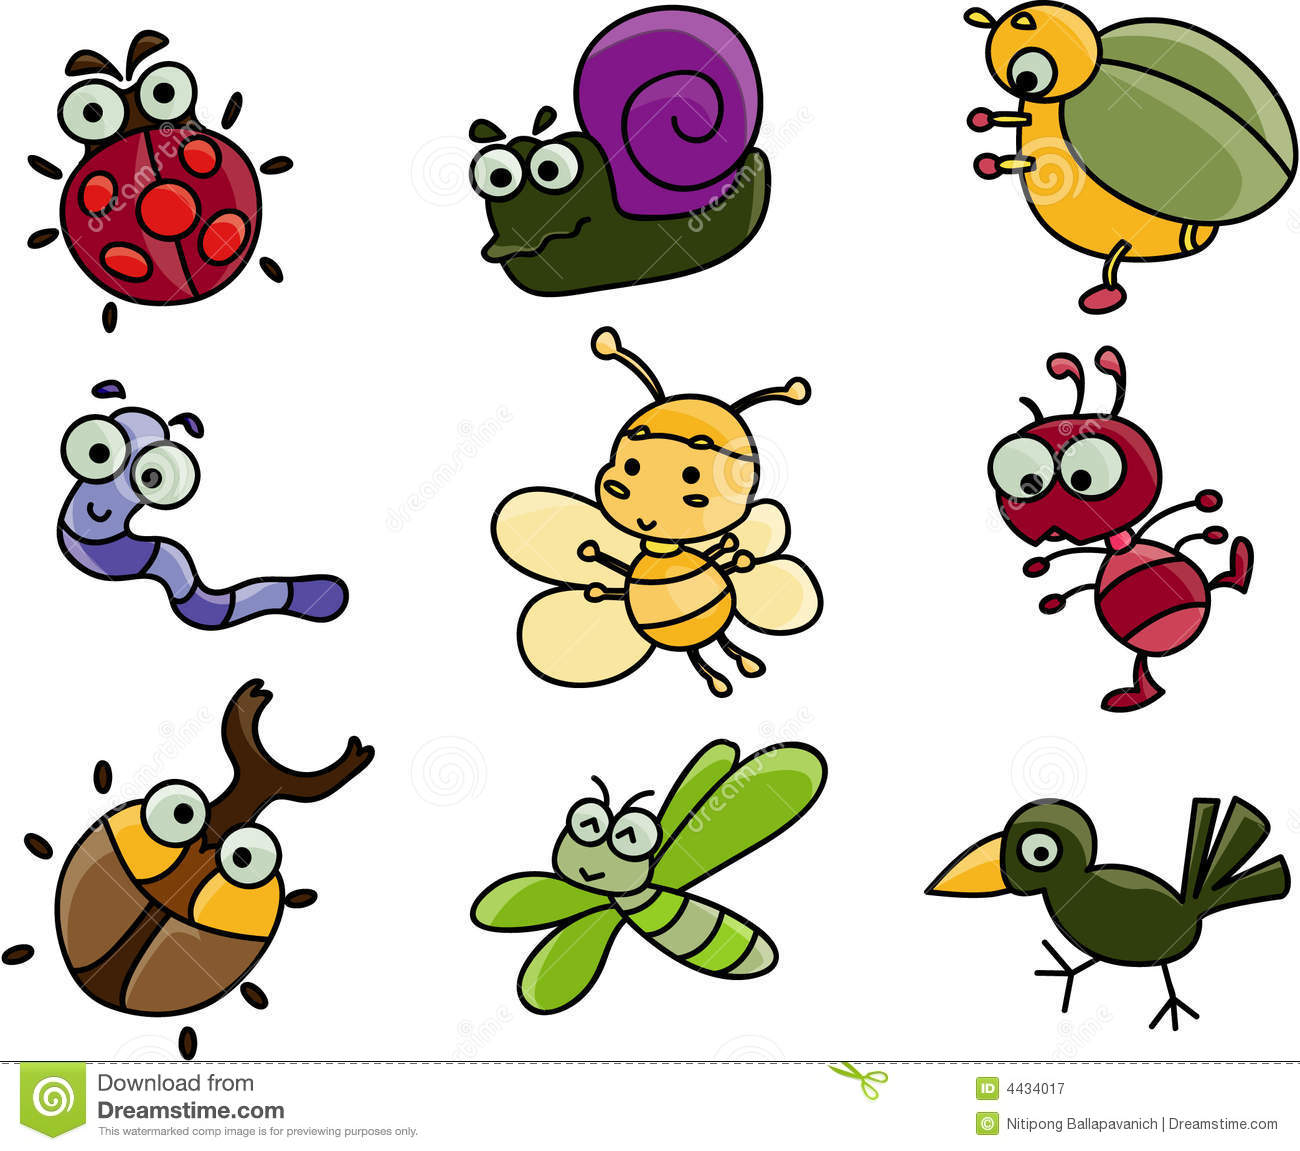 Clipart collection w3i.